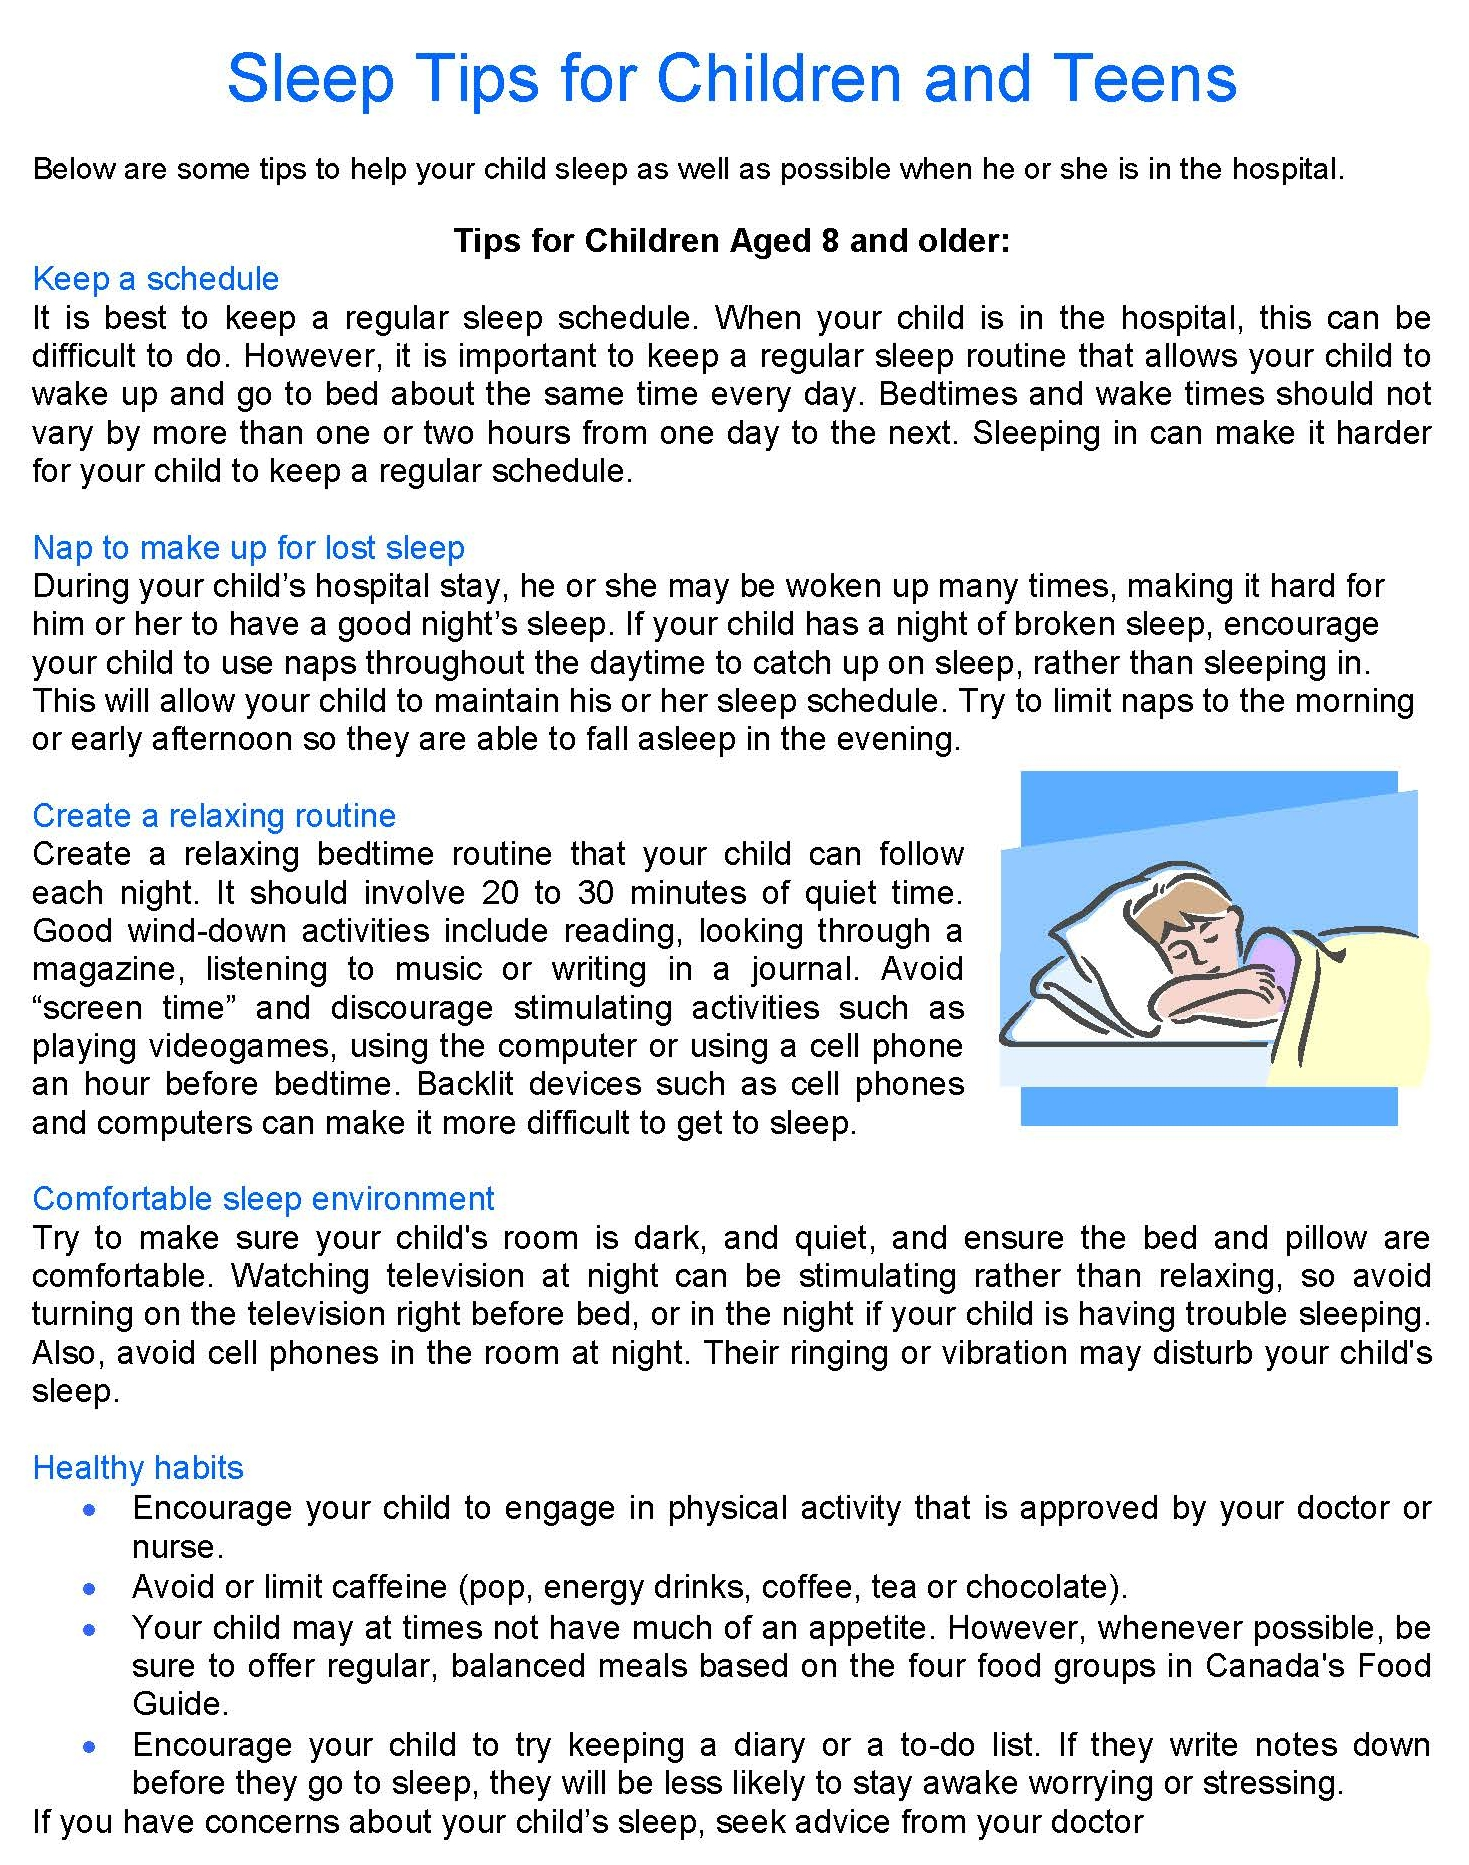 Reference: Narang, I. (October 9, 2013). Sleep Tips for Children and Teens.  AboutKidsHealth . Retrieved April 2, 2014. From  http://www.aboutkidshealth.ca/En/HealthAZ/HealthandWellness/Sleep/Pages/sleep-tips-for-children-and-teens.aspx